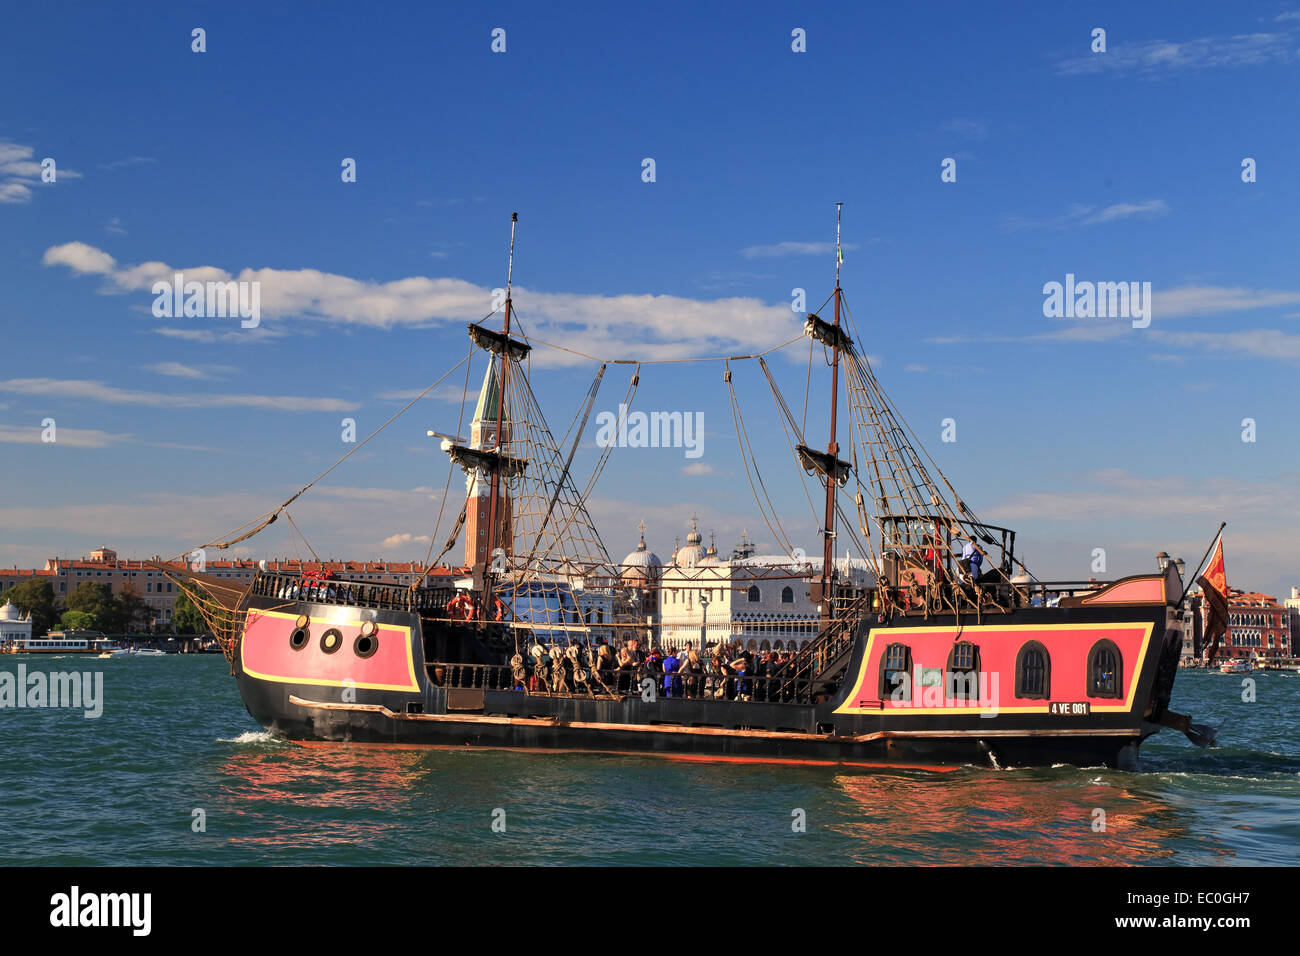 The pirate ship Jolly Roger - Il Galeone Veneziano / Venetian Galleon, Venice - Stock Image